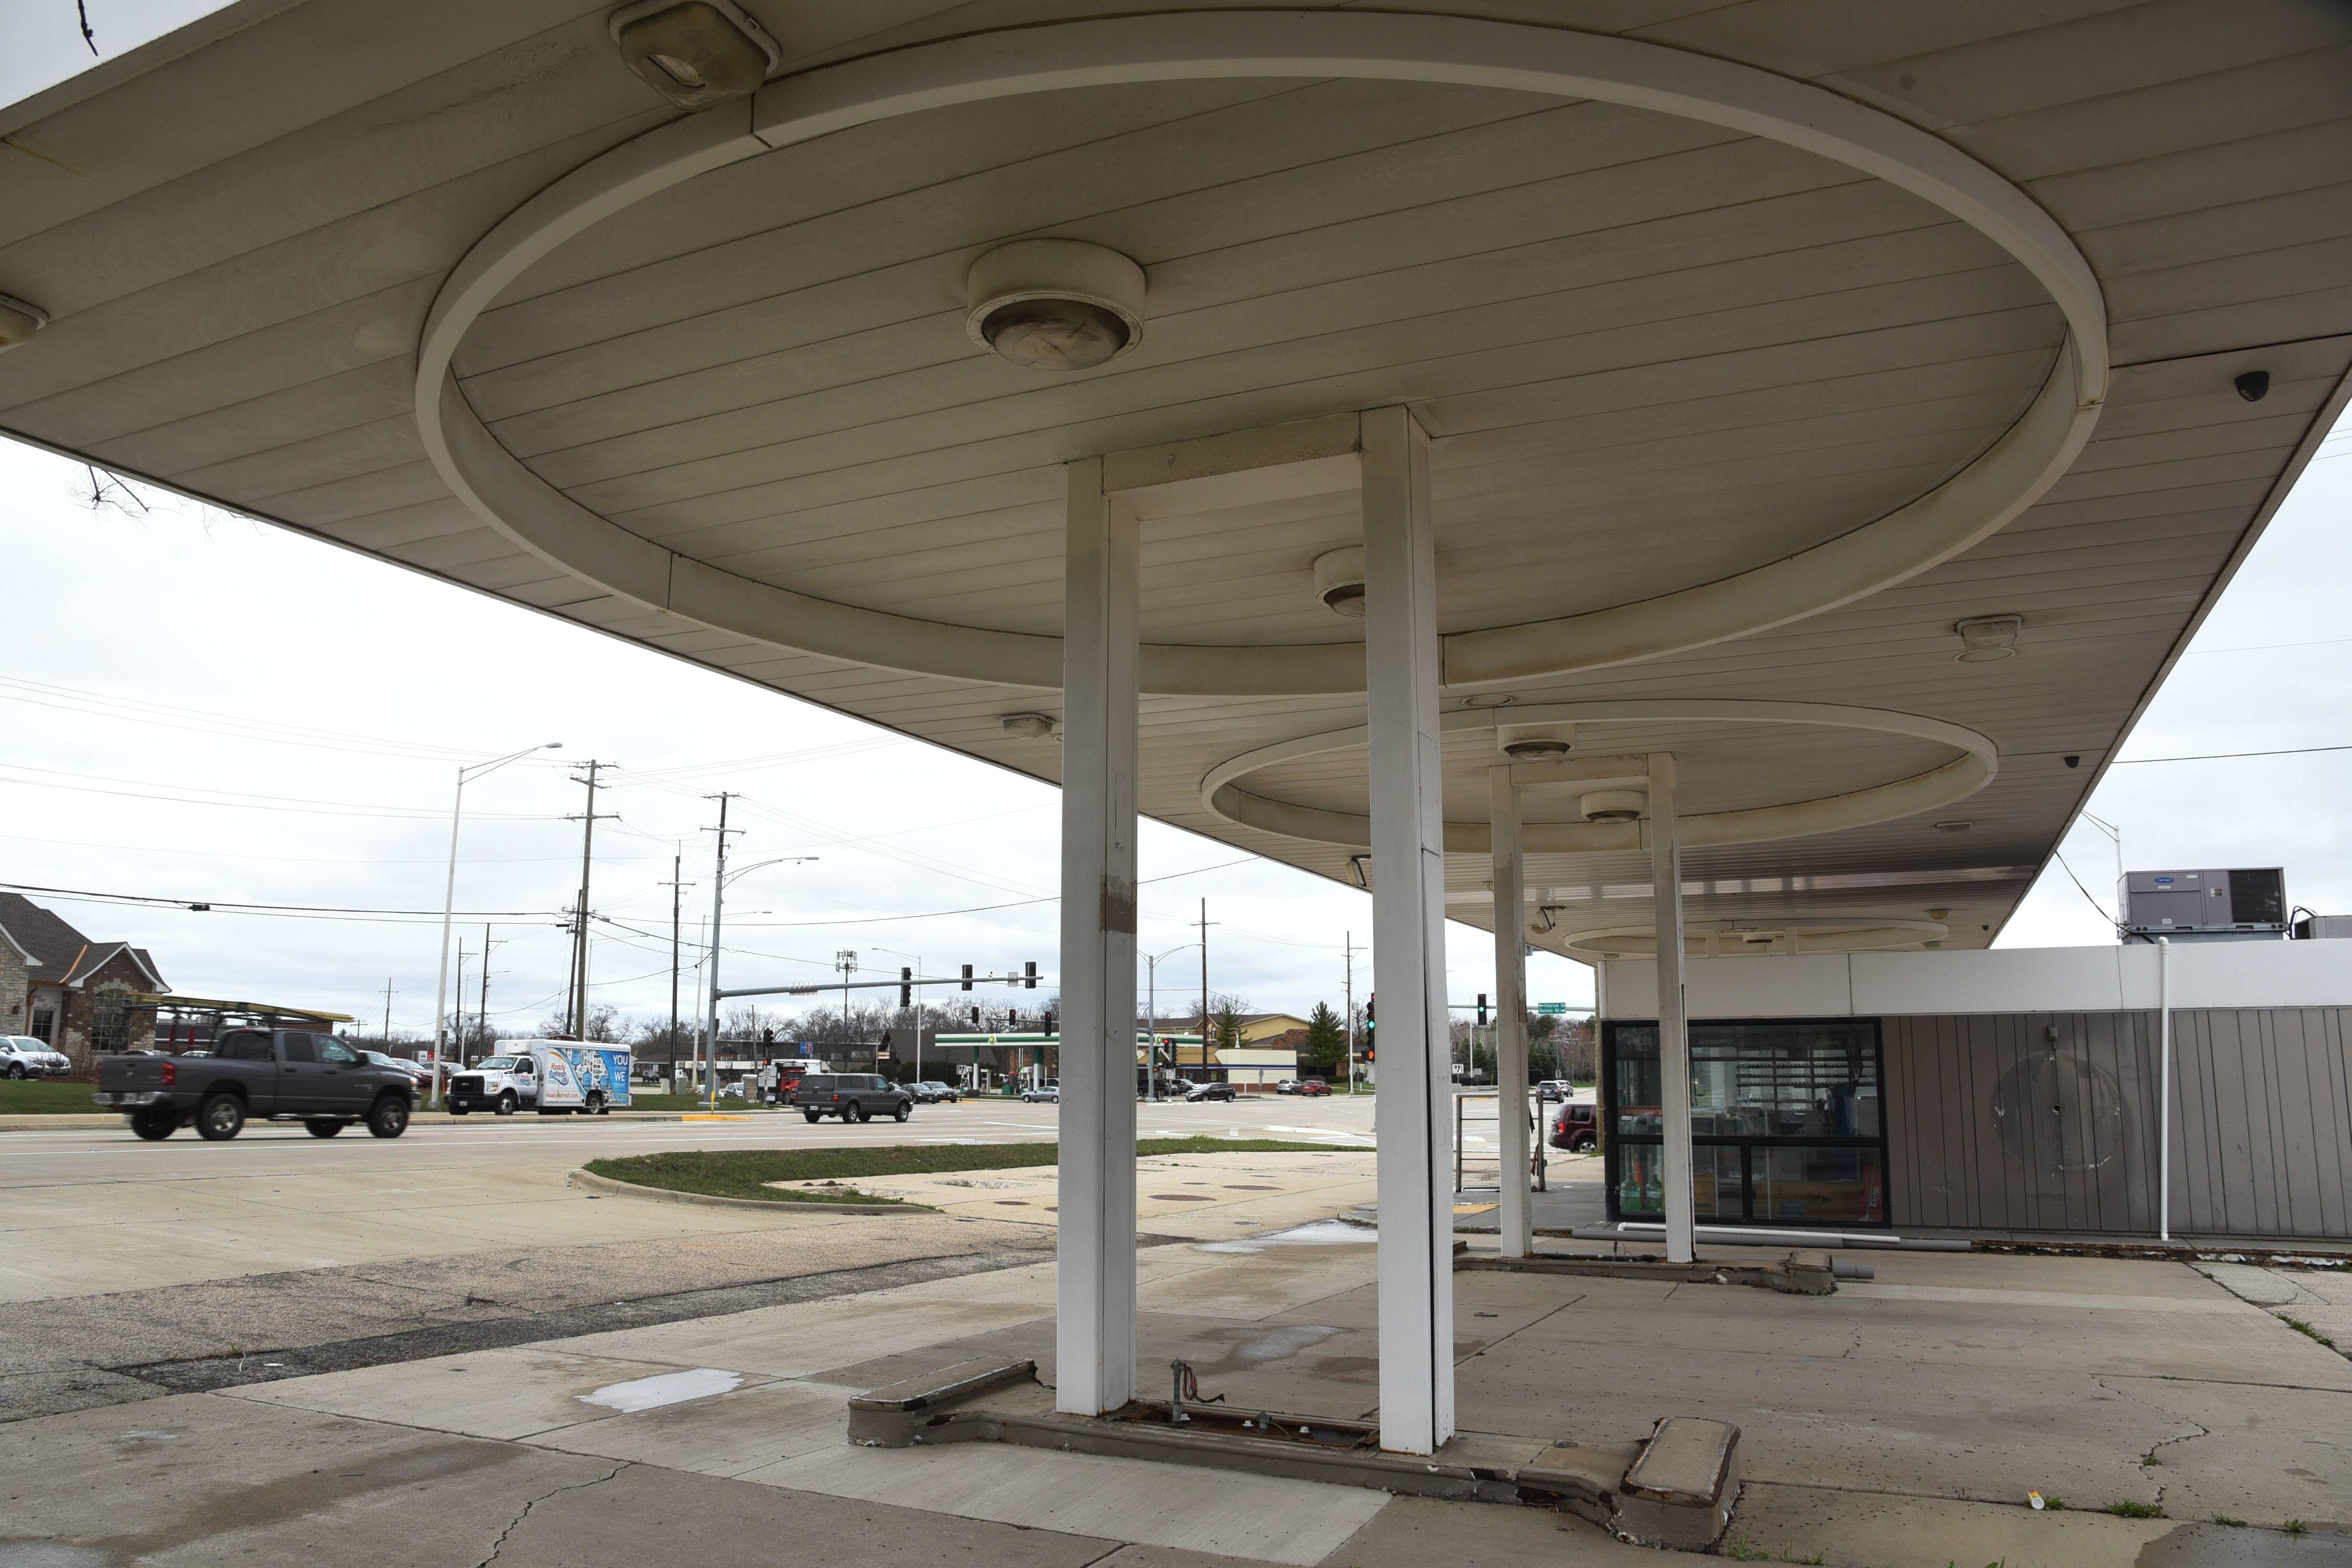 Road widening puts squeeze on former gas station site in Libertyville